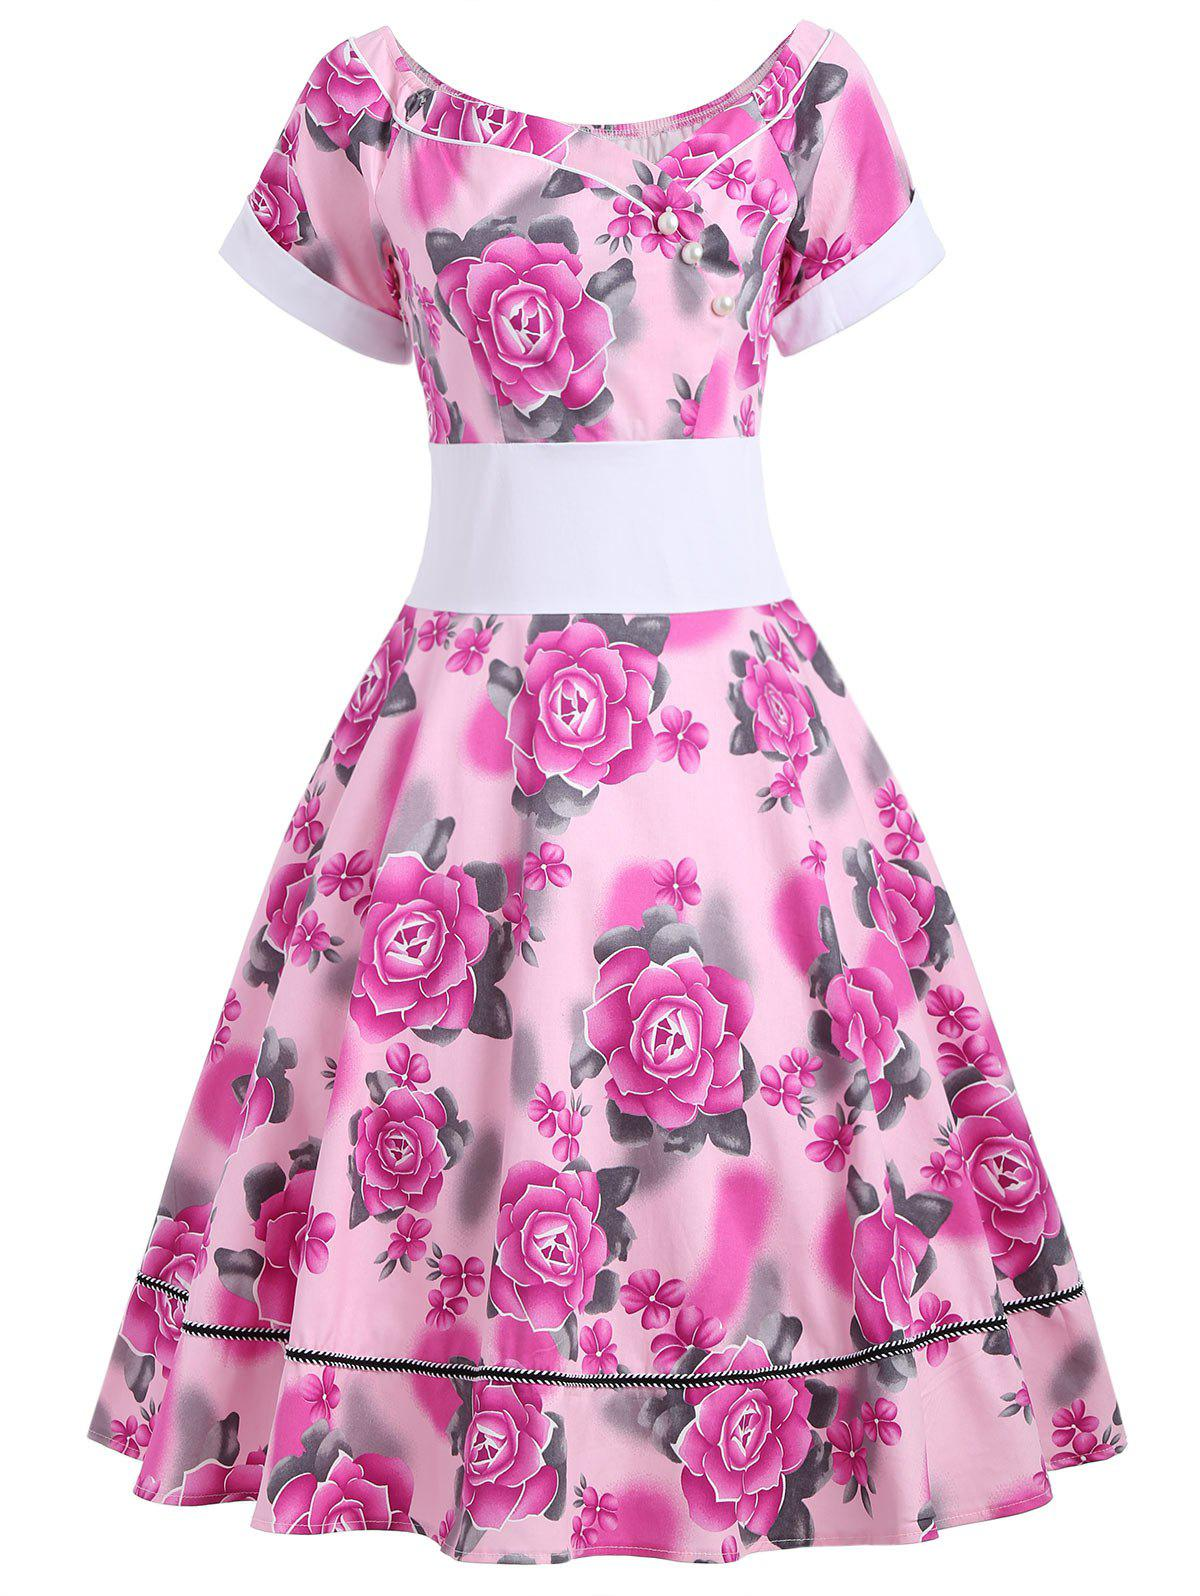 Flower Print Empire Waist 50s Swing Dress - TUTTI FRUTTI 2XL